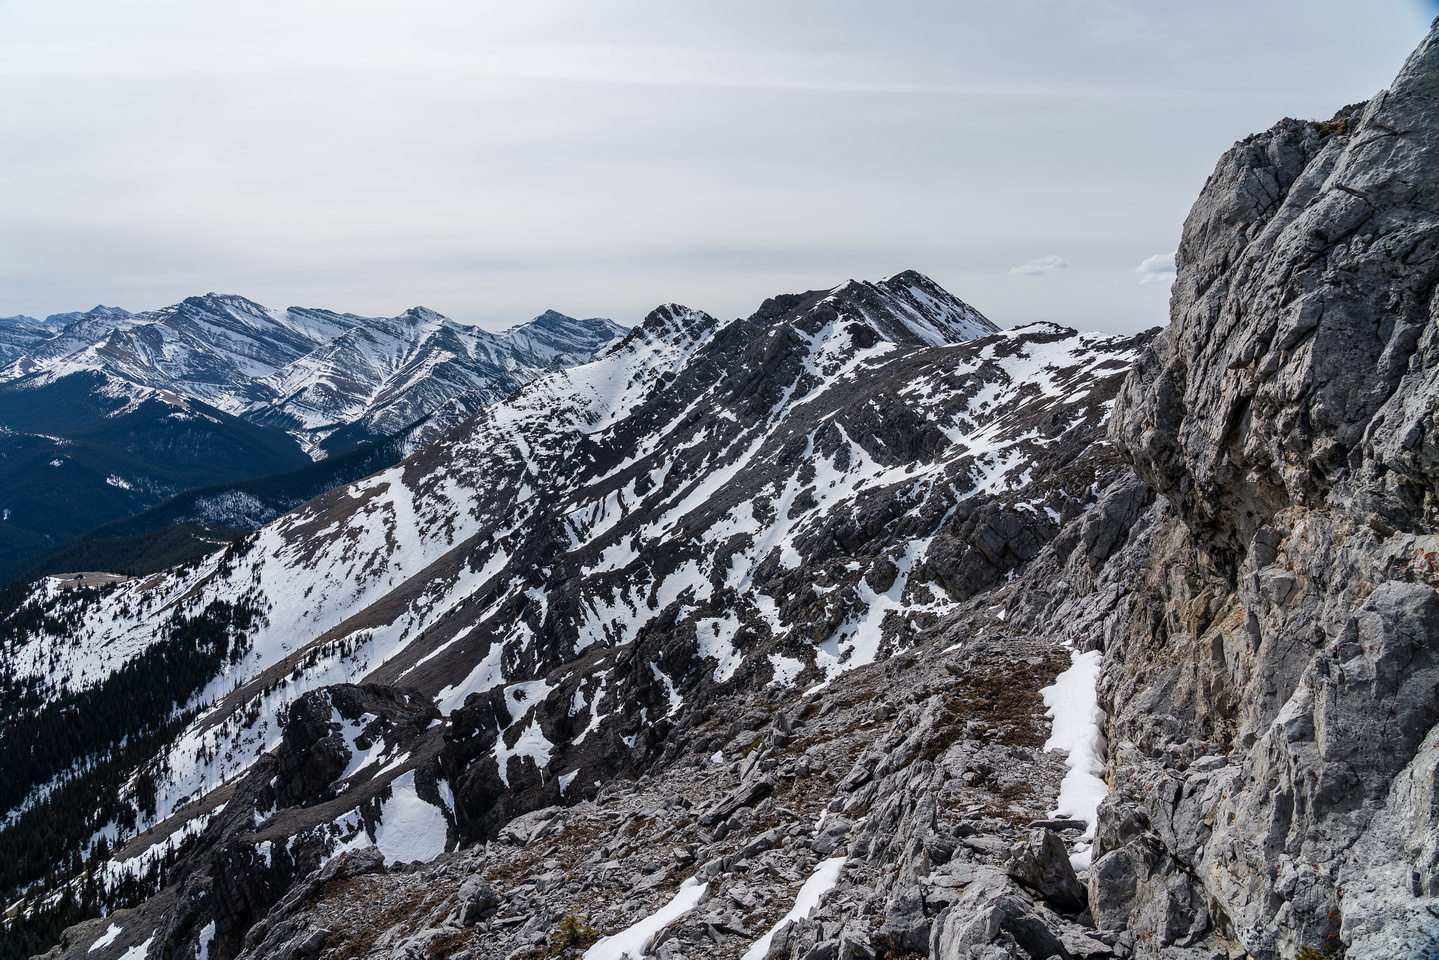 Views from the descent to the summit.